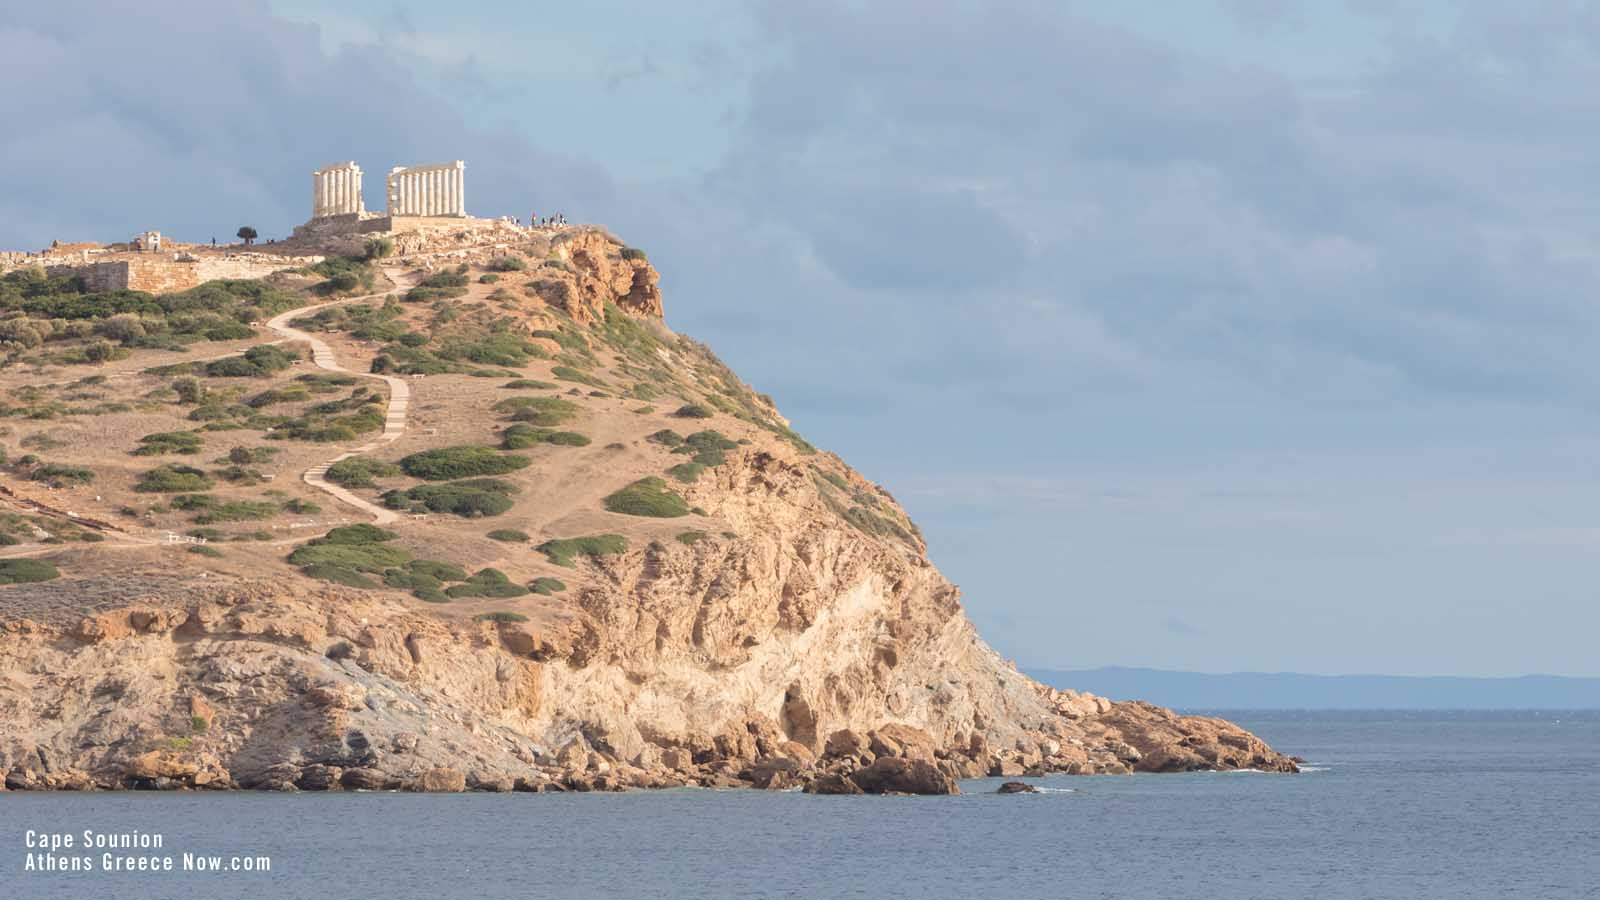 Enlarged - Cape Sounion - with Temple on peak